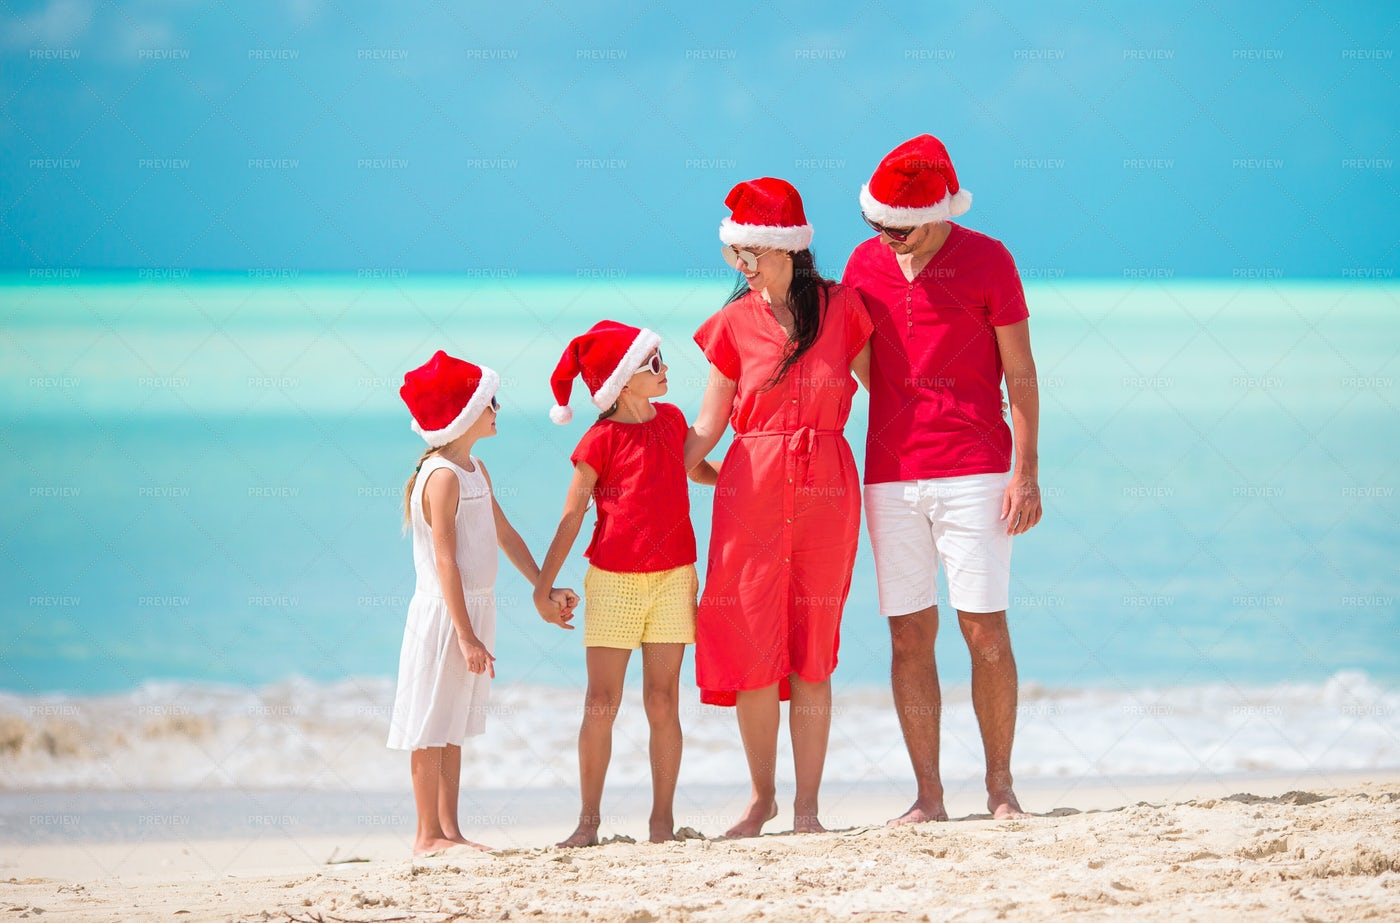 In Front Of The Beach During Christmas: Stock Photos